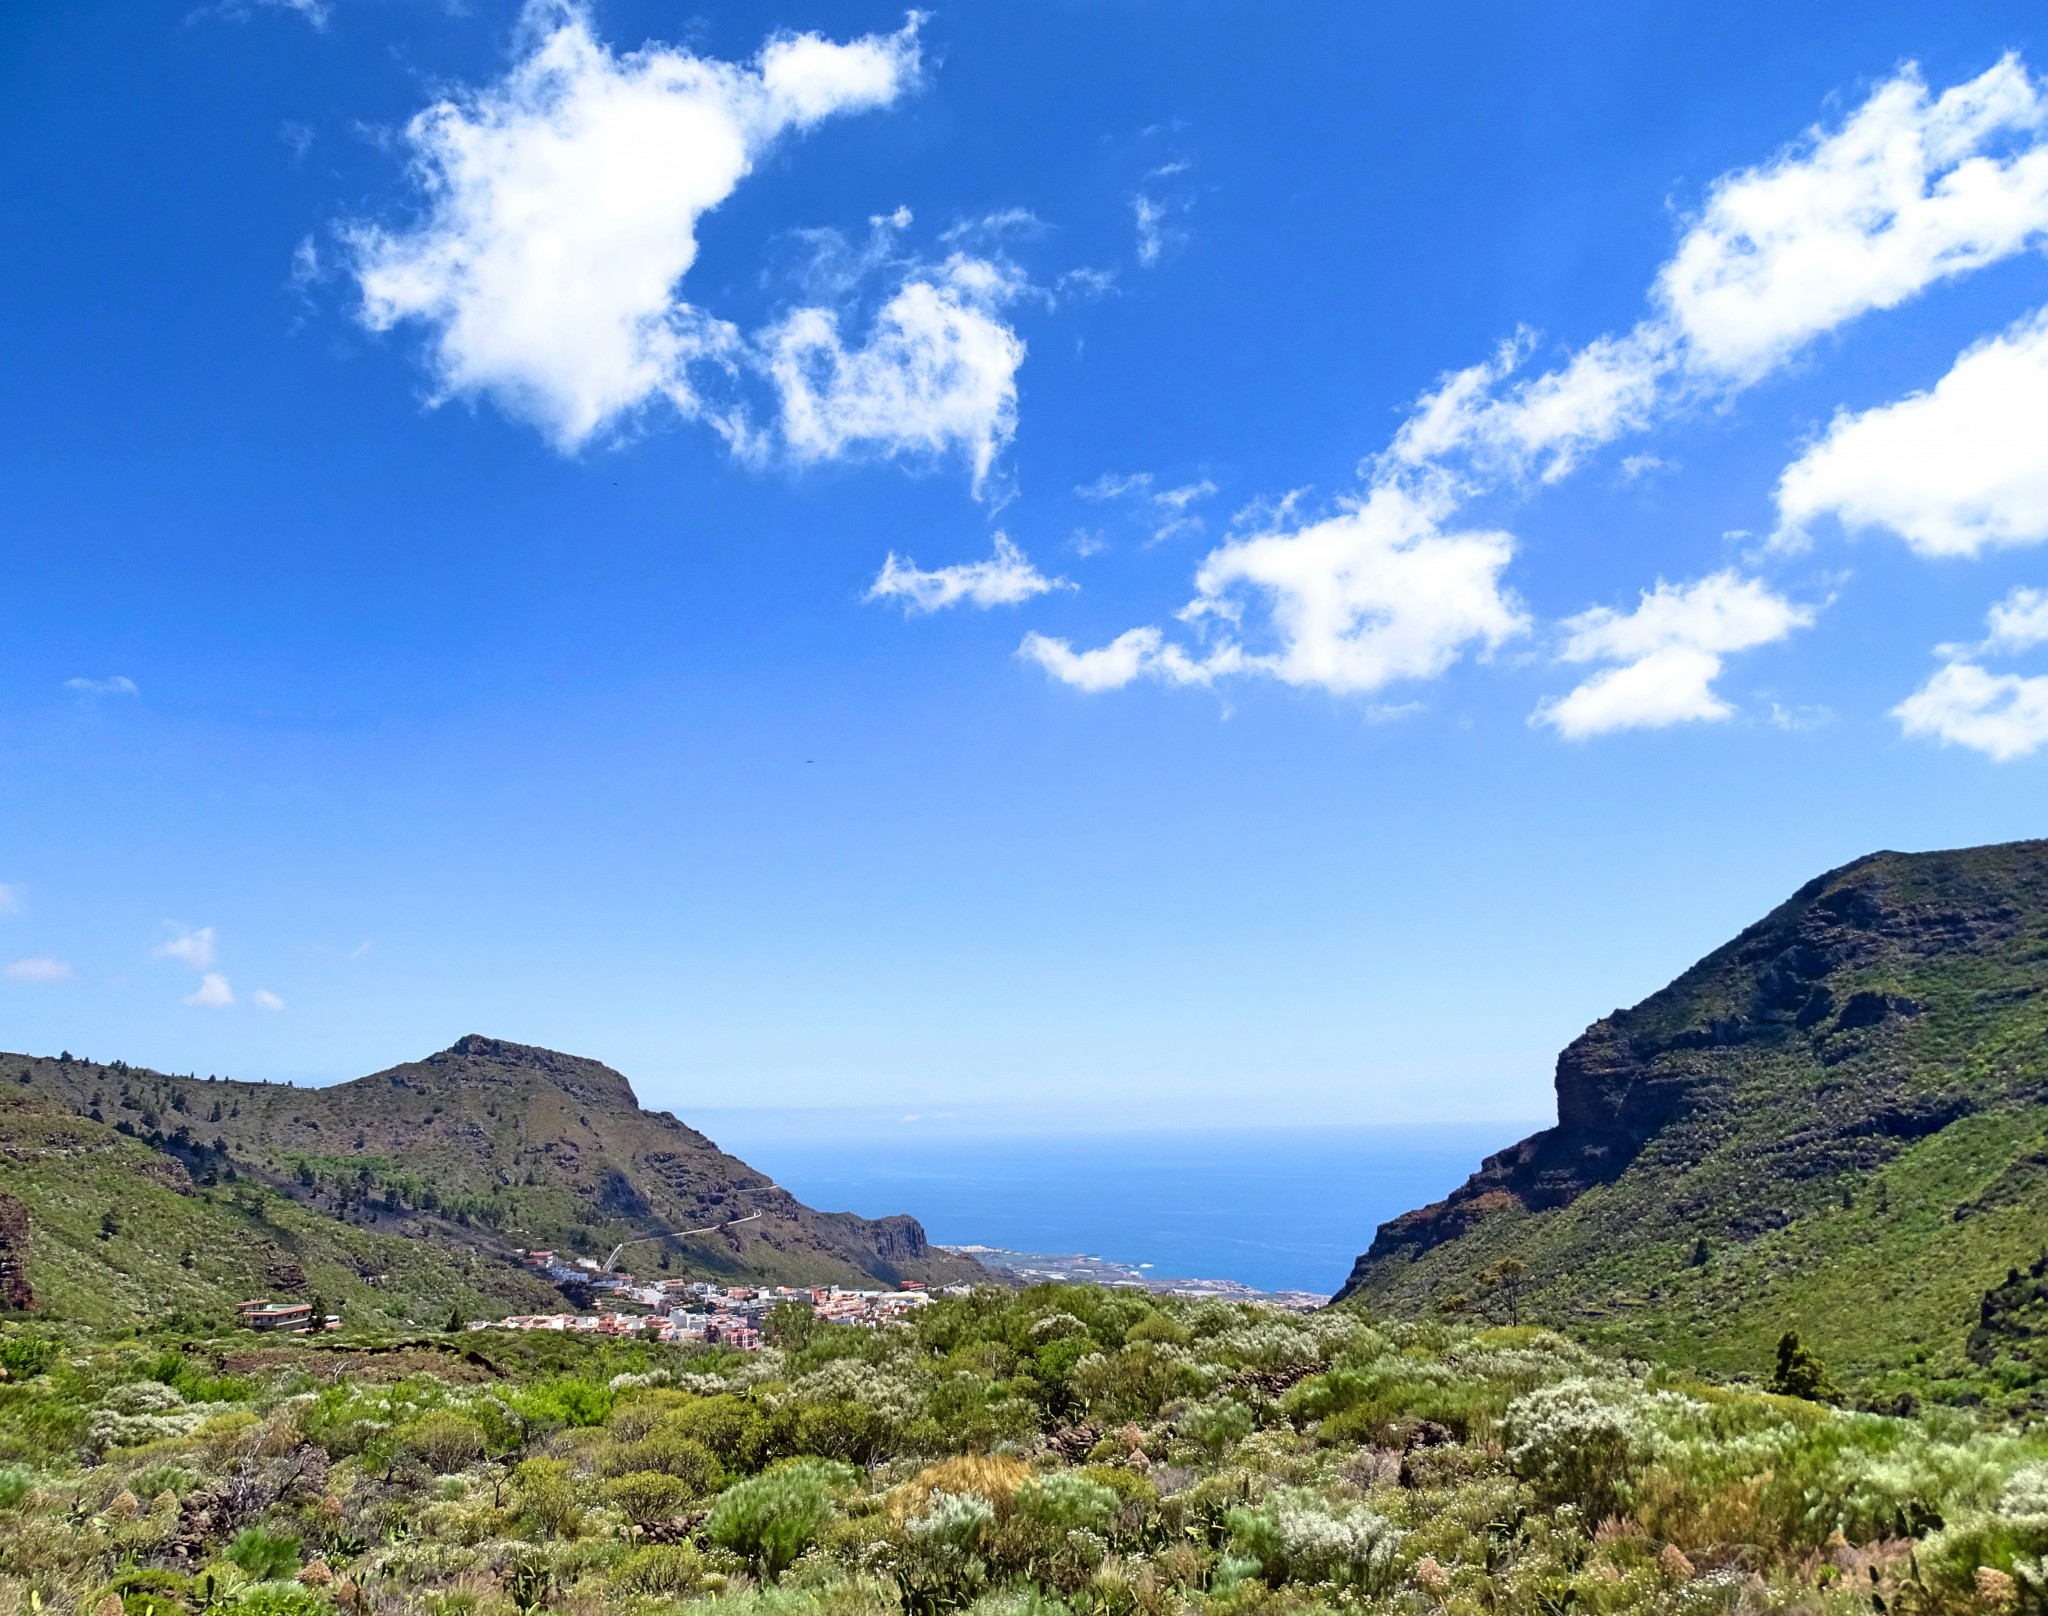 View down to Los Gigantes